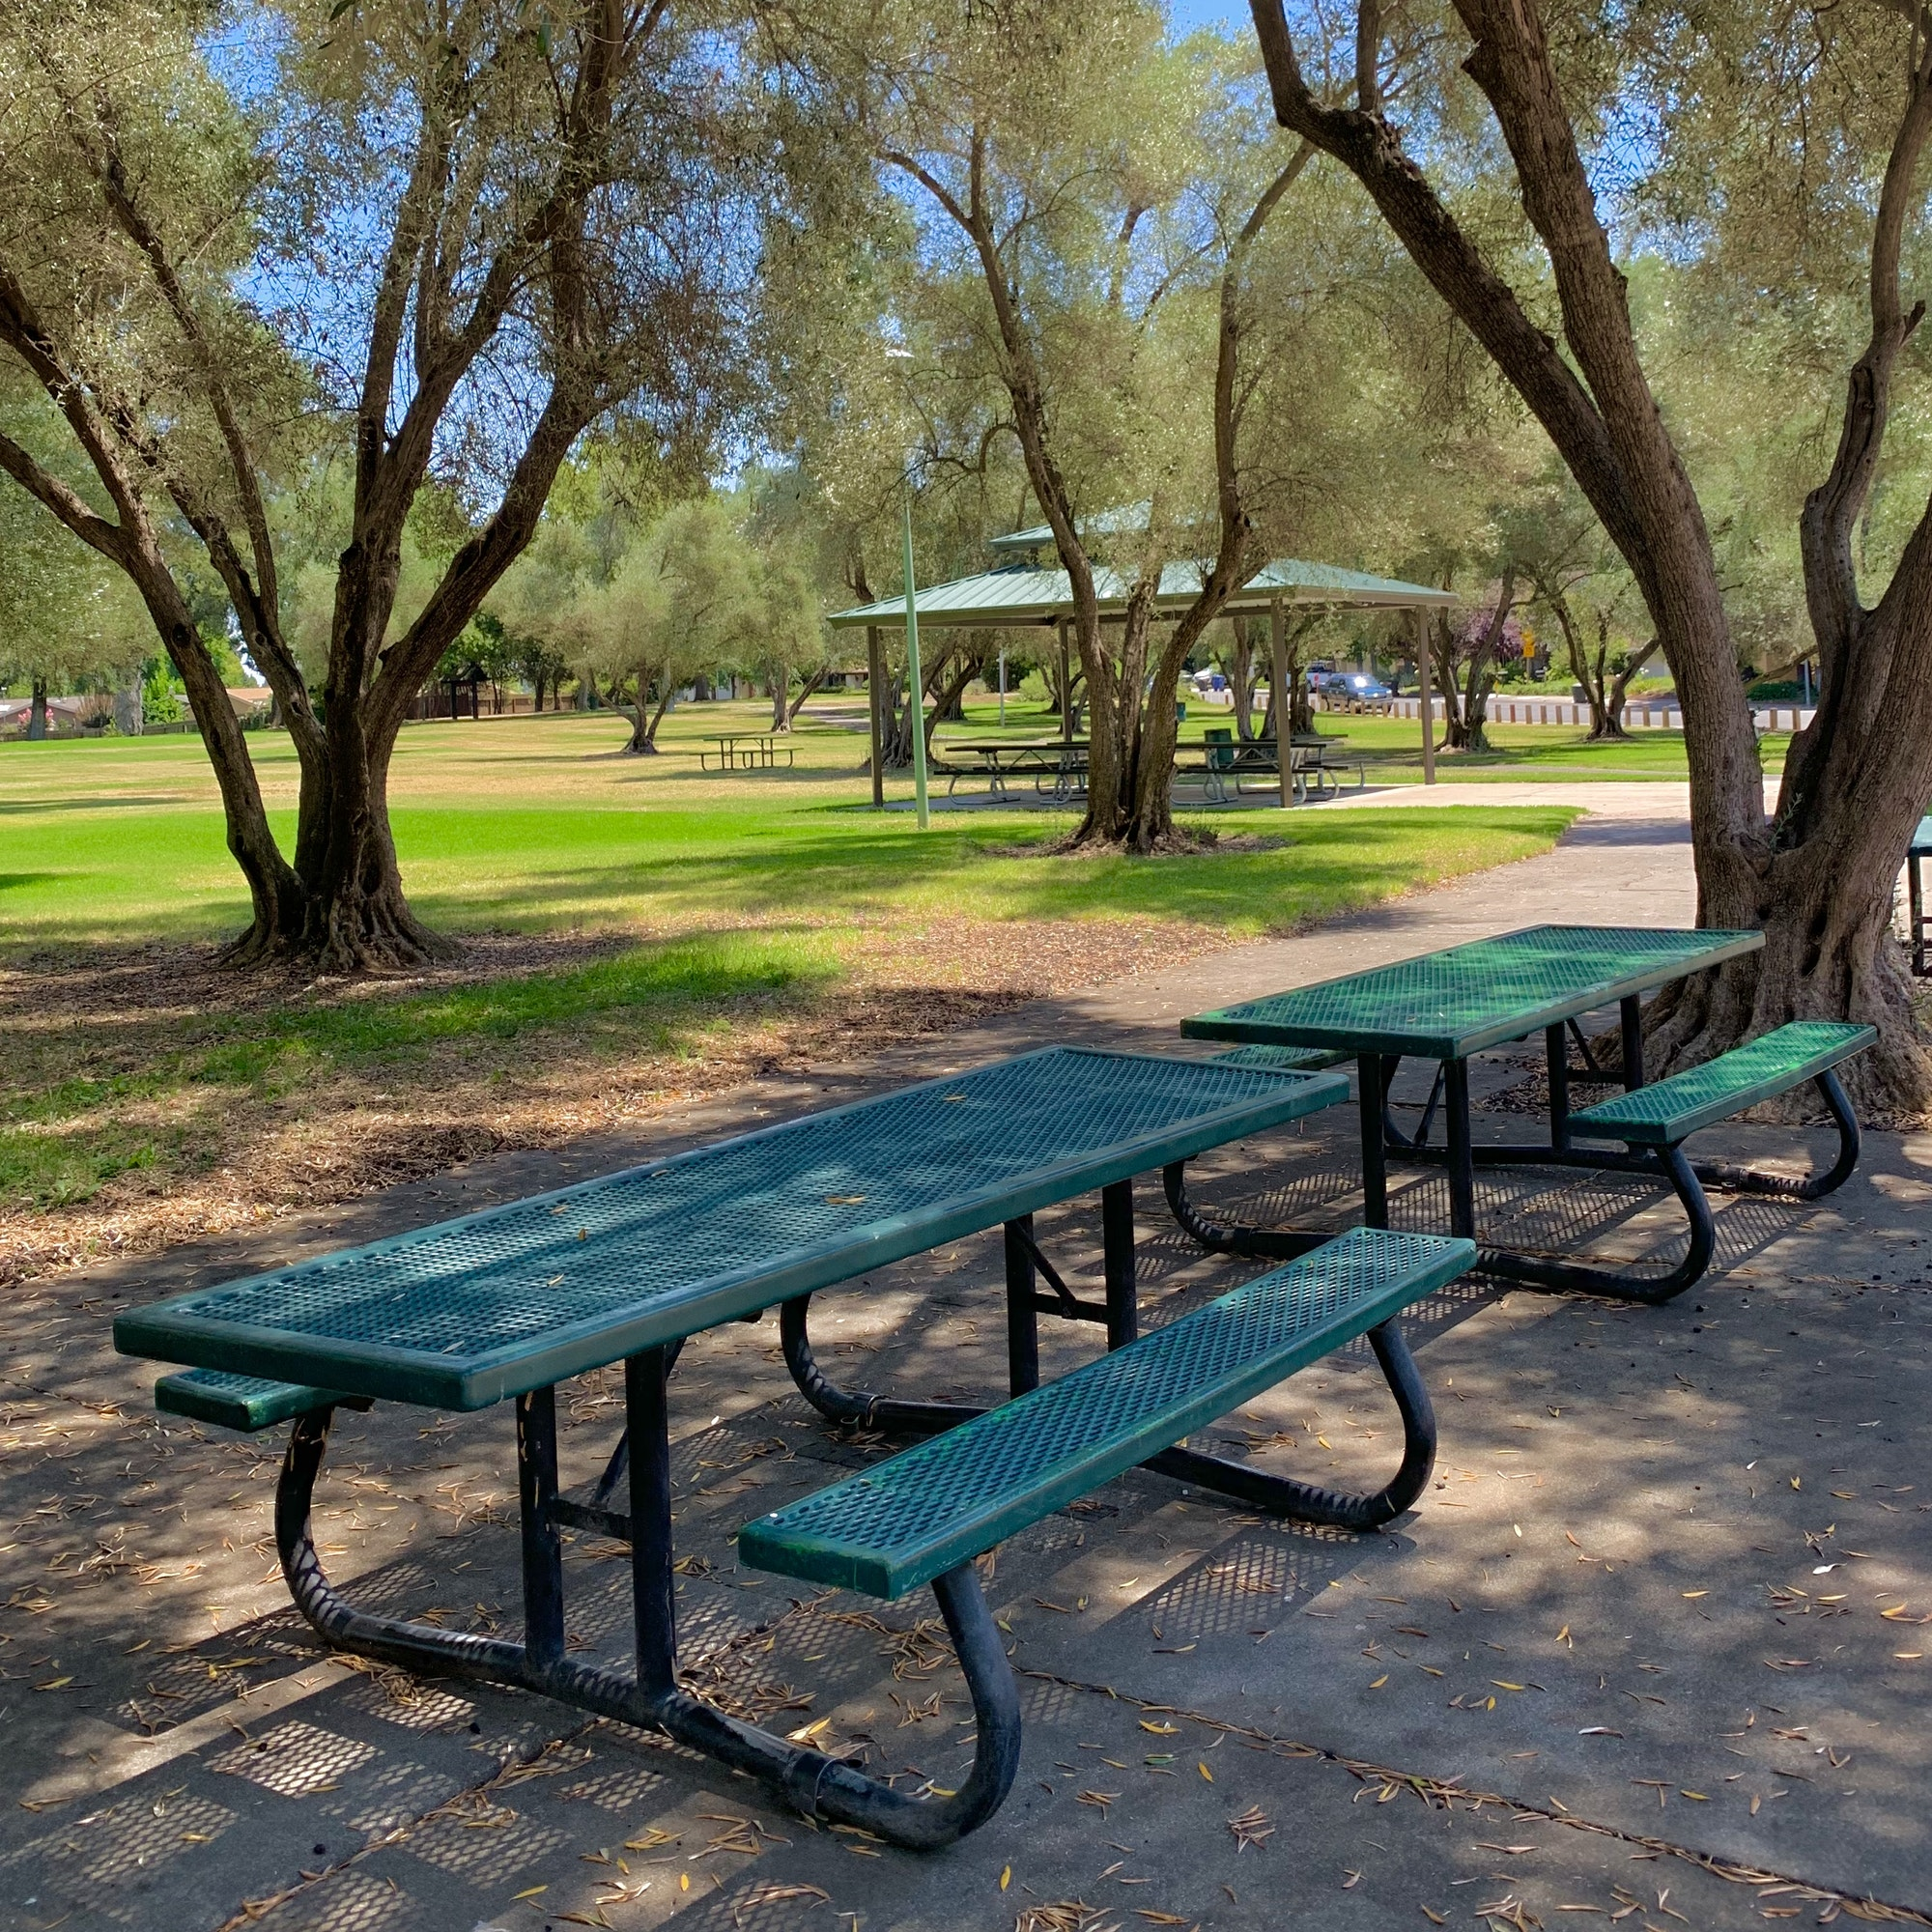 May contain: furniture, bench, park bench, plant, tree, and grass